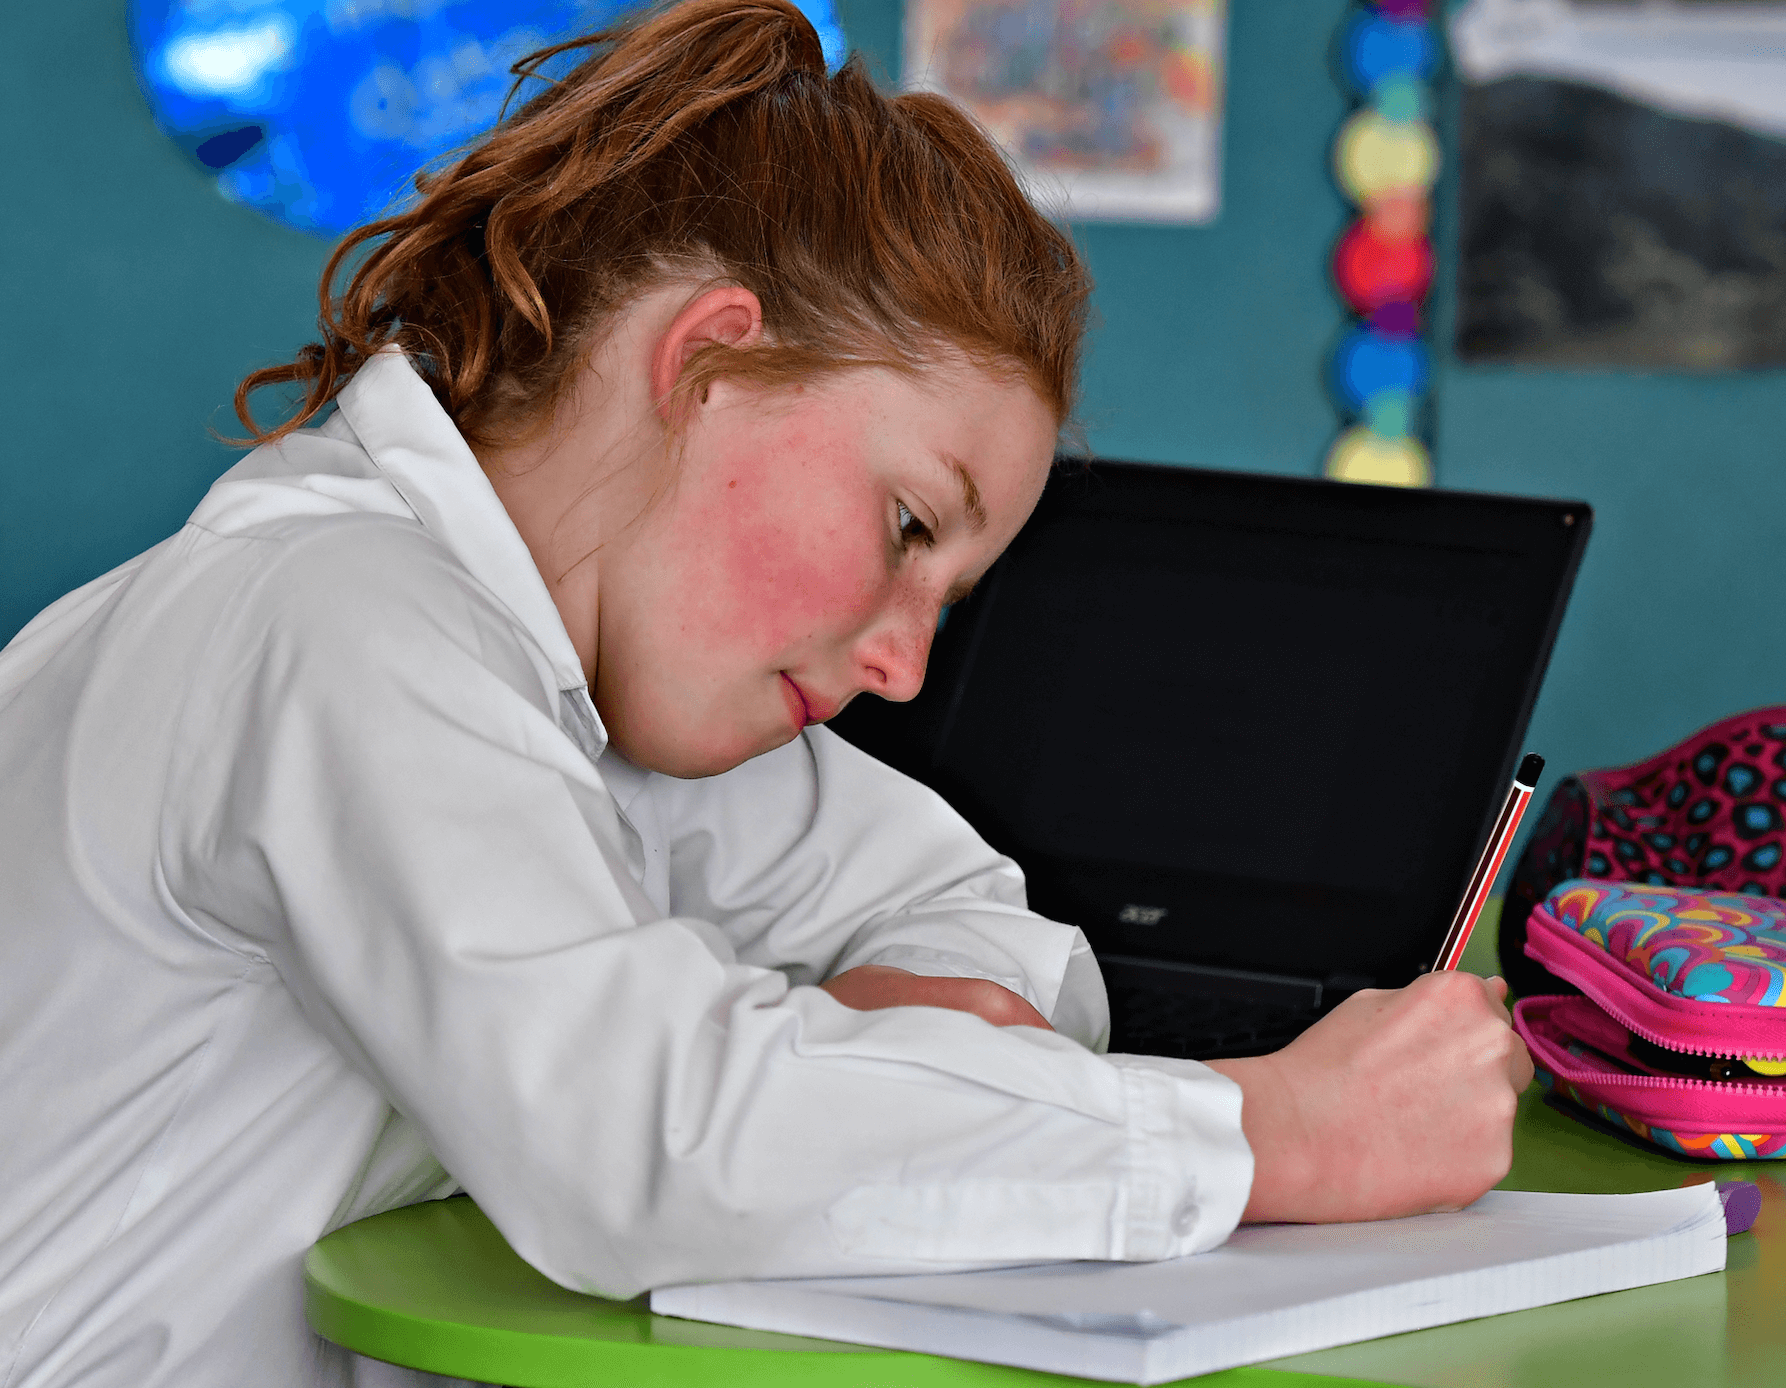 Female student writing in a notebook